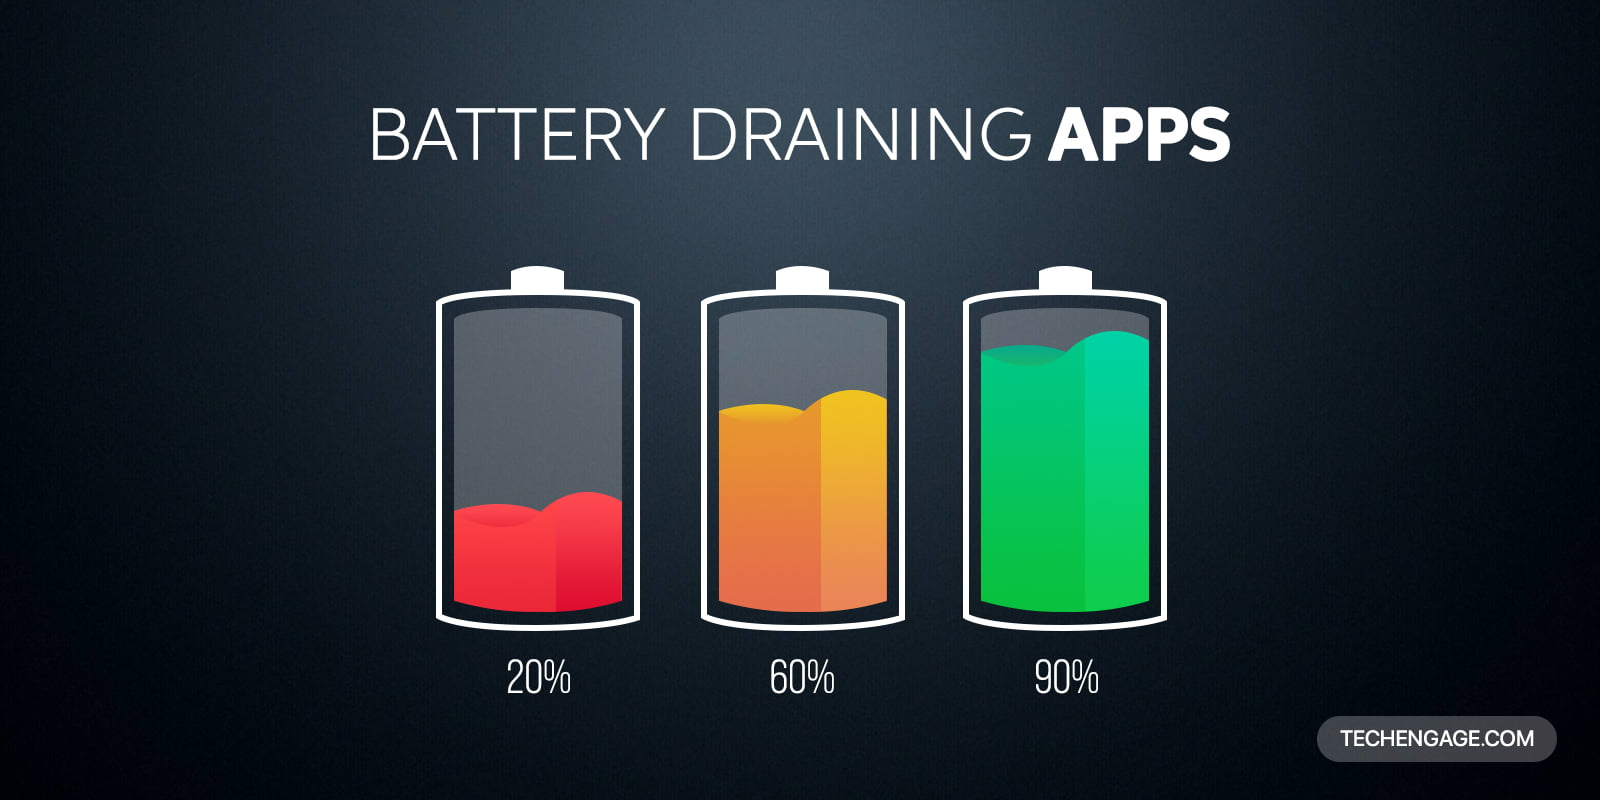 Top 10 battery draining apps to avoid 2021